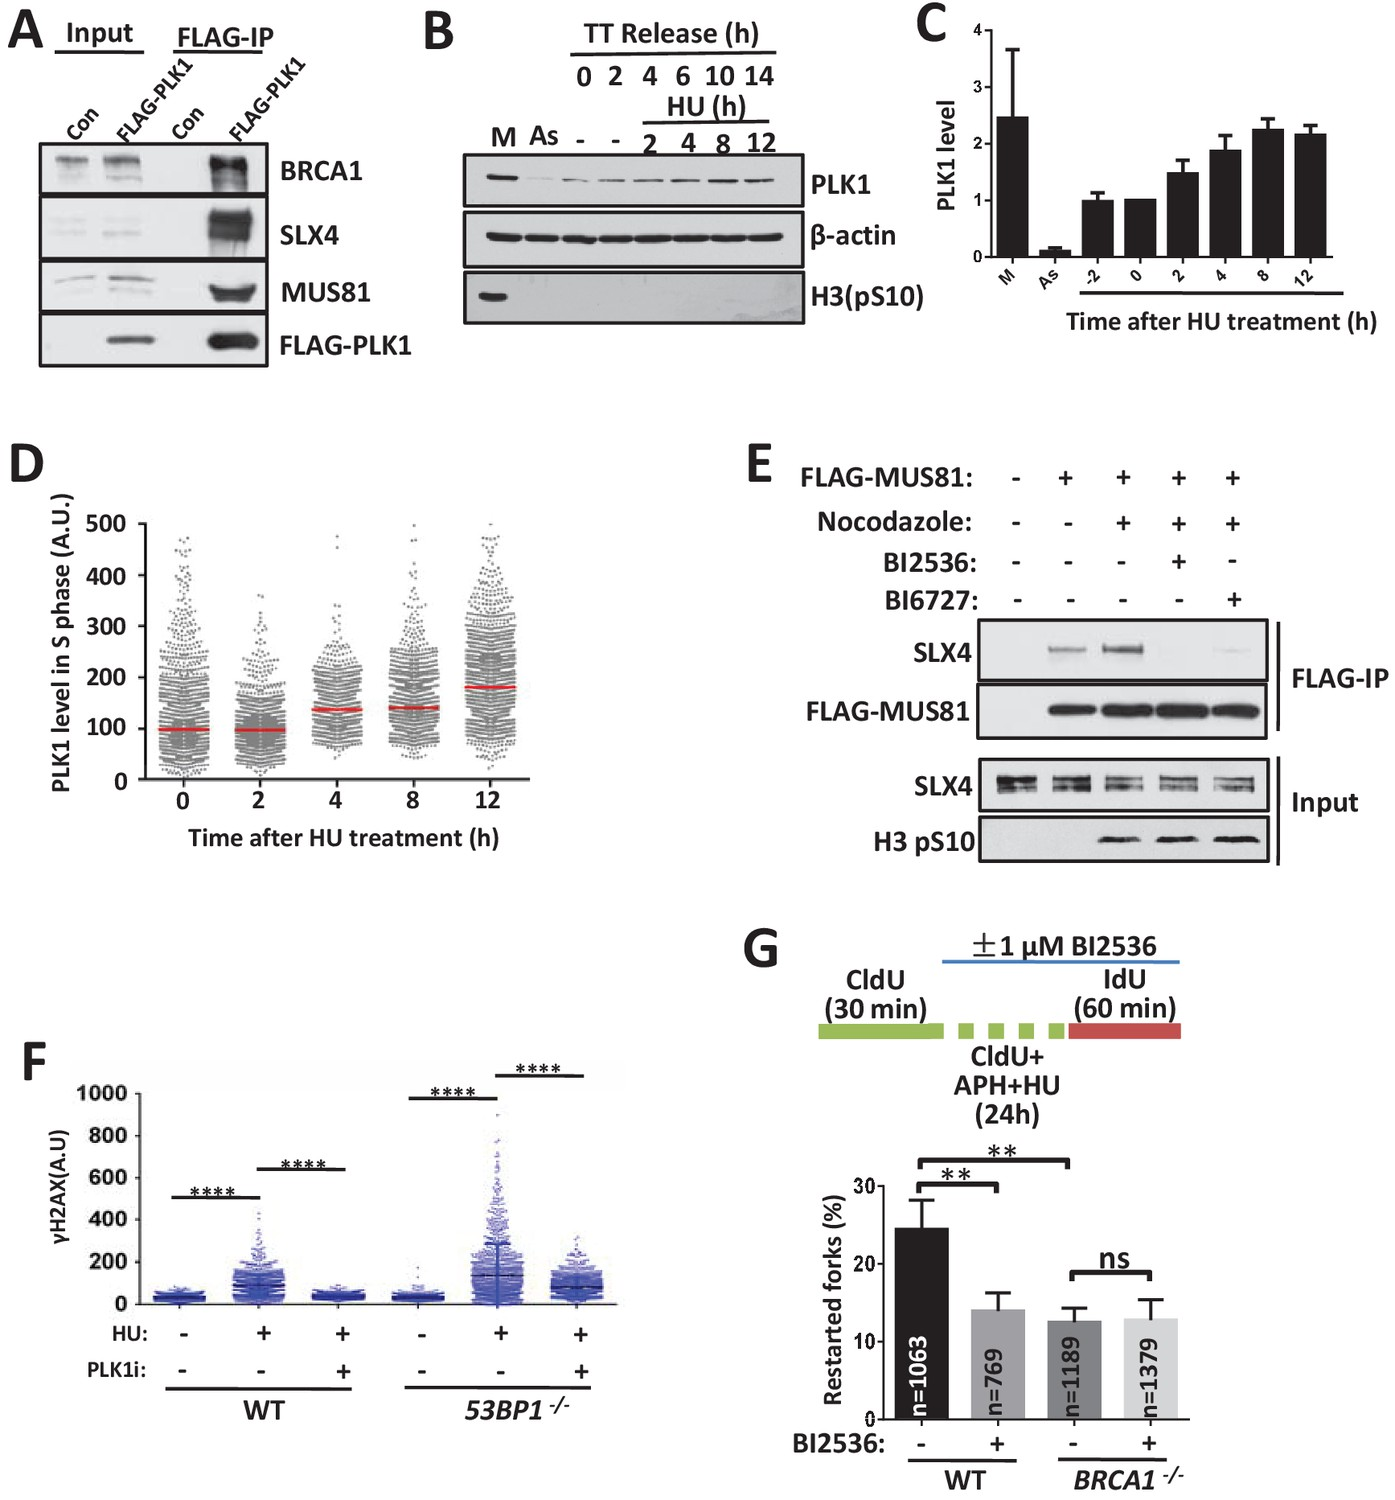 53bp1 And Brca1 Control Pathway Choice For Stalled Replication In The Above Circuit When Toggle Switch Is Open As Shown 12 Plk1 Controls Switching Between Mediated Cleavage Free To